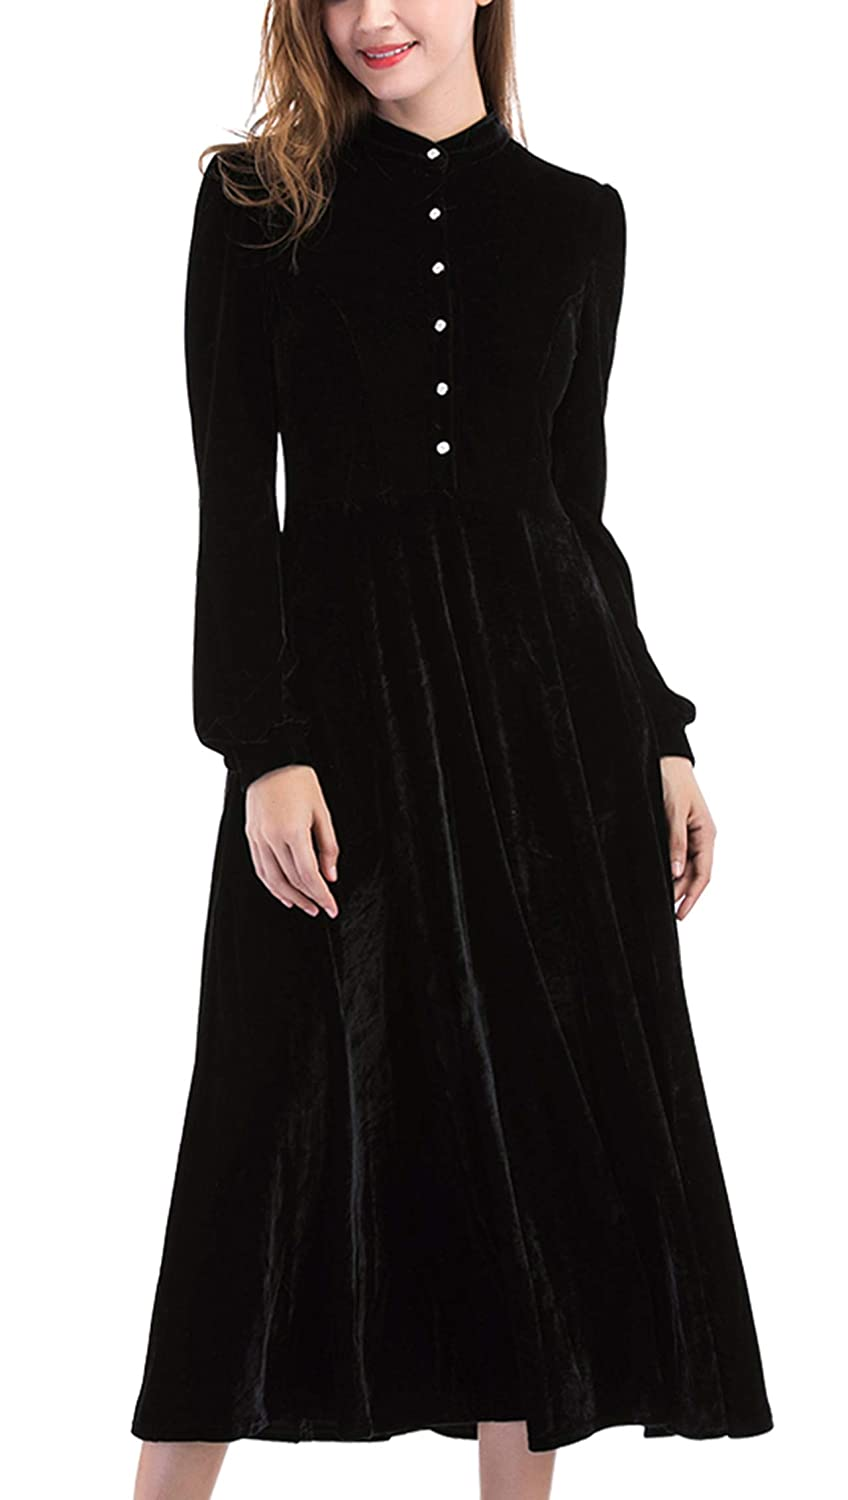 1930s Day Dresses, Afternoon Dresses History Ayliss Women Velvet Maxi Dress Peter Pan Collar Long Sleeve Swing Dress $29.99 AT vintagedancer.com